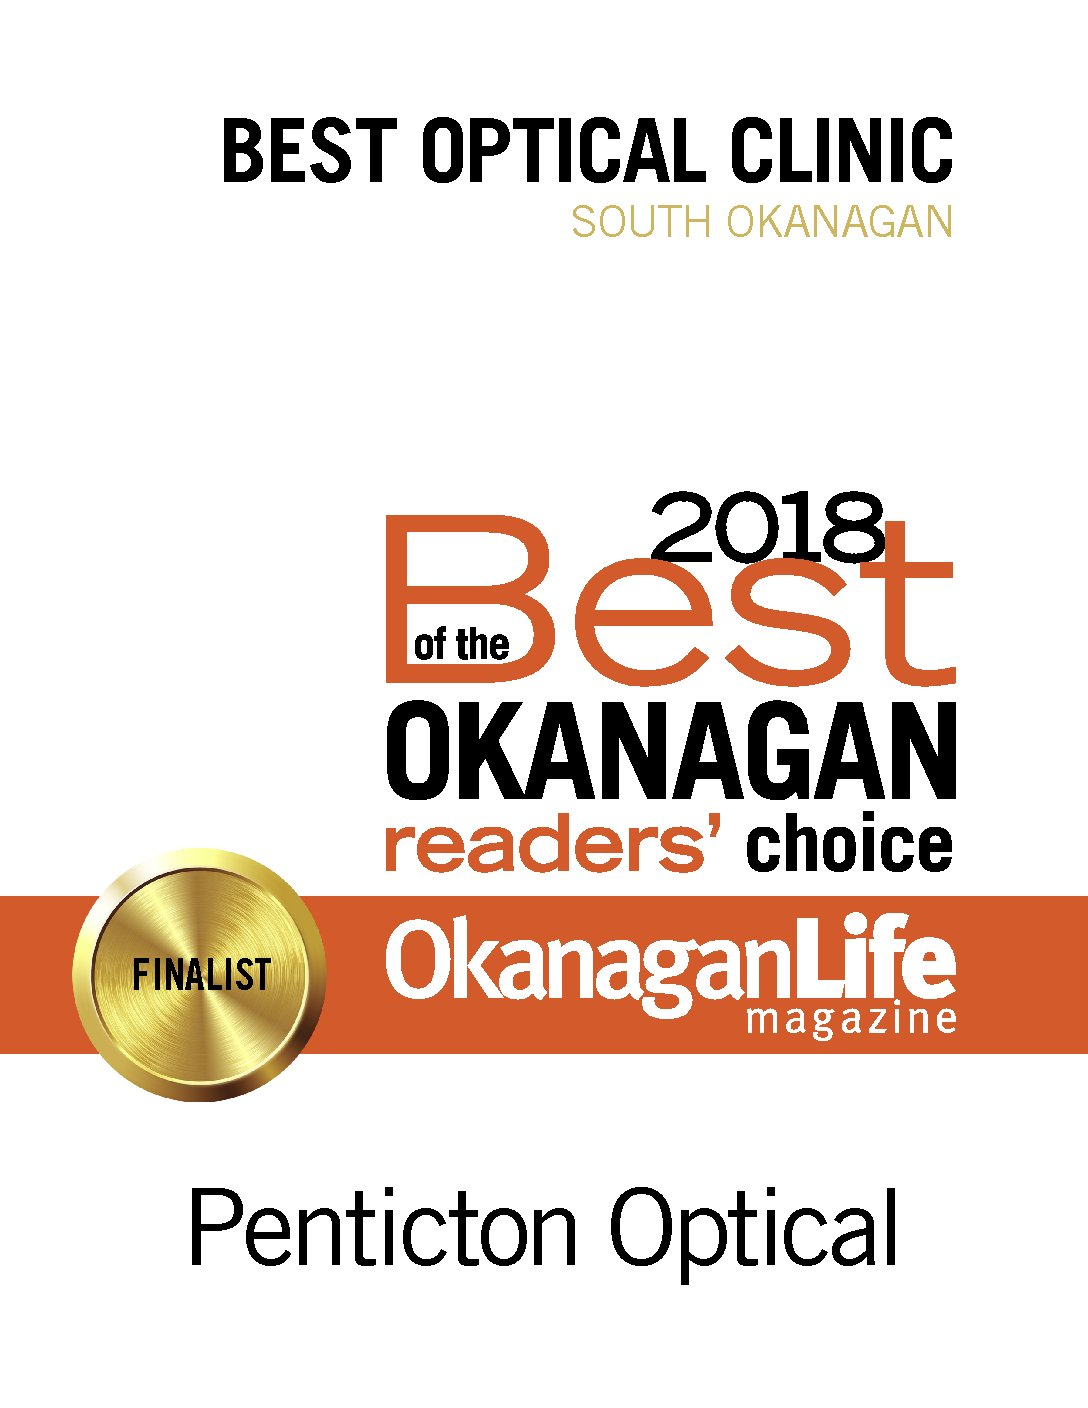 Penticton Optical